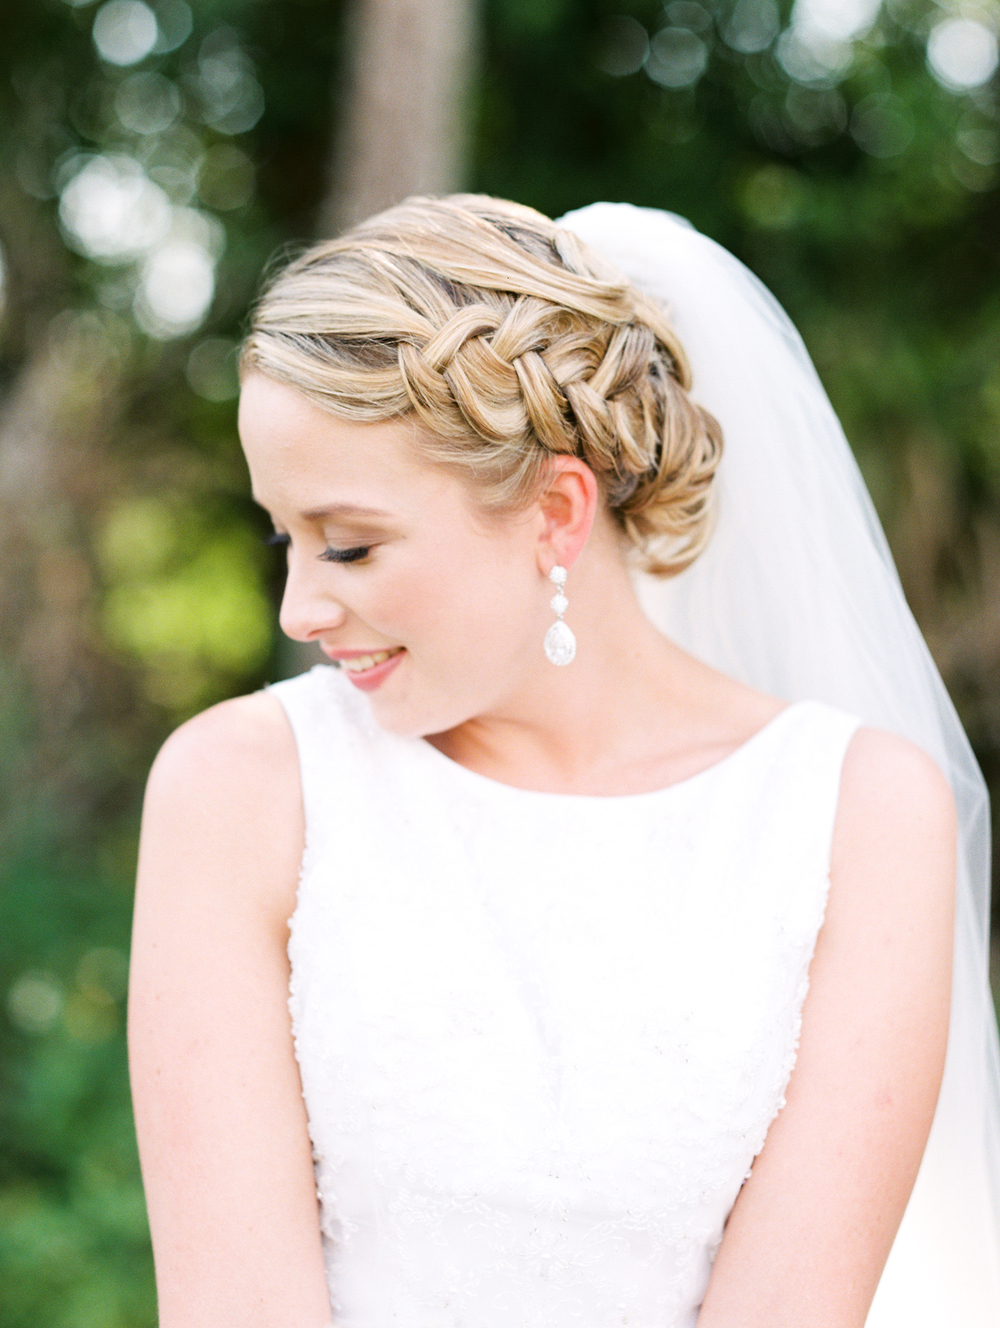 Sterling stables, brevard county FL wedding bride  photo